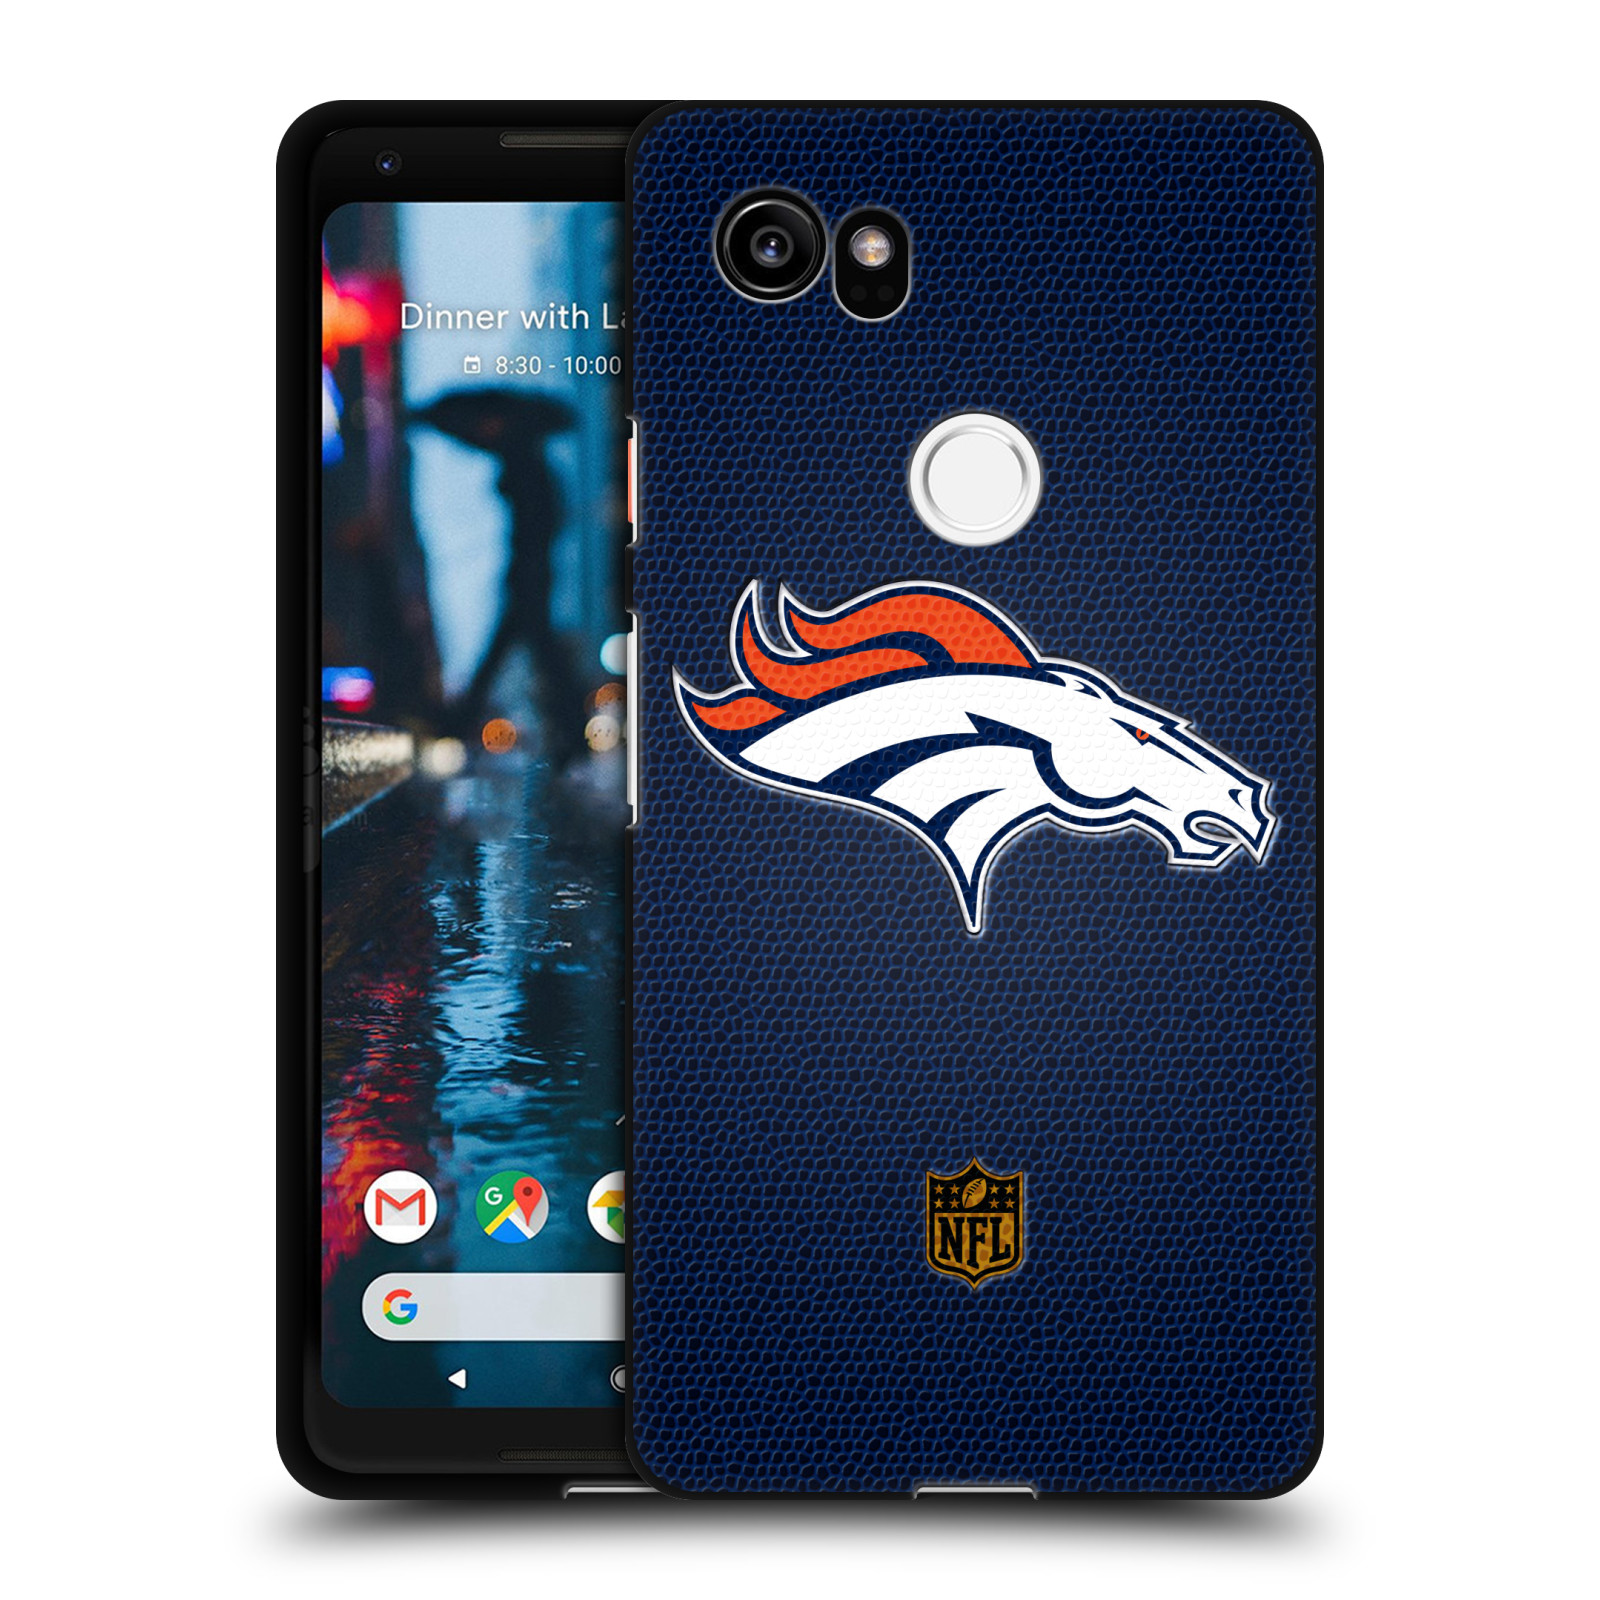 OFFICIAL-NFL-DENVER-BRONCOS-LOGO-BLACK-SOFT-GEL-CASE-FOR-GOOGLE-PHONES